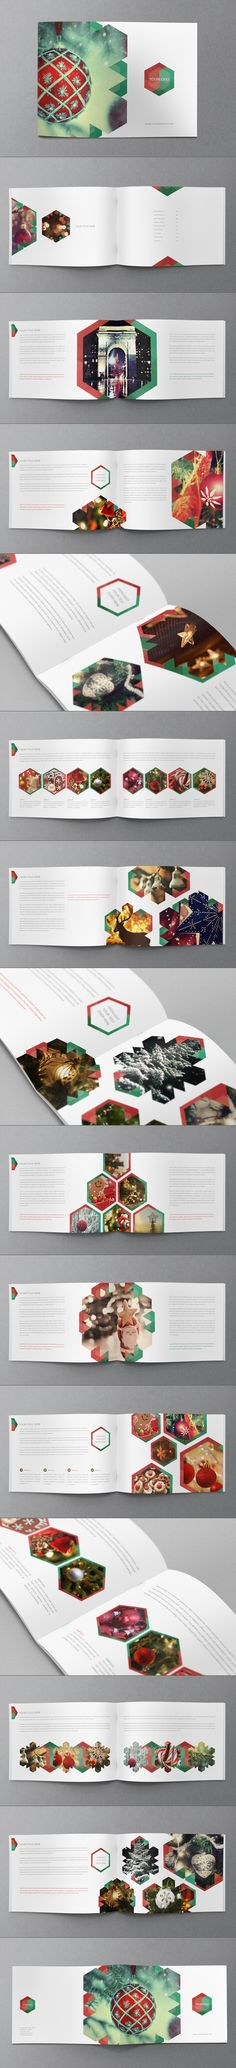 The continuation of polygon shapes brings unity to the magazine. I would like to try something like this in my piece